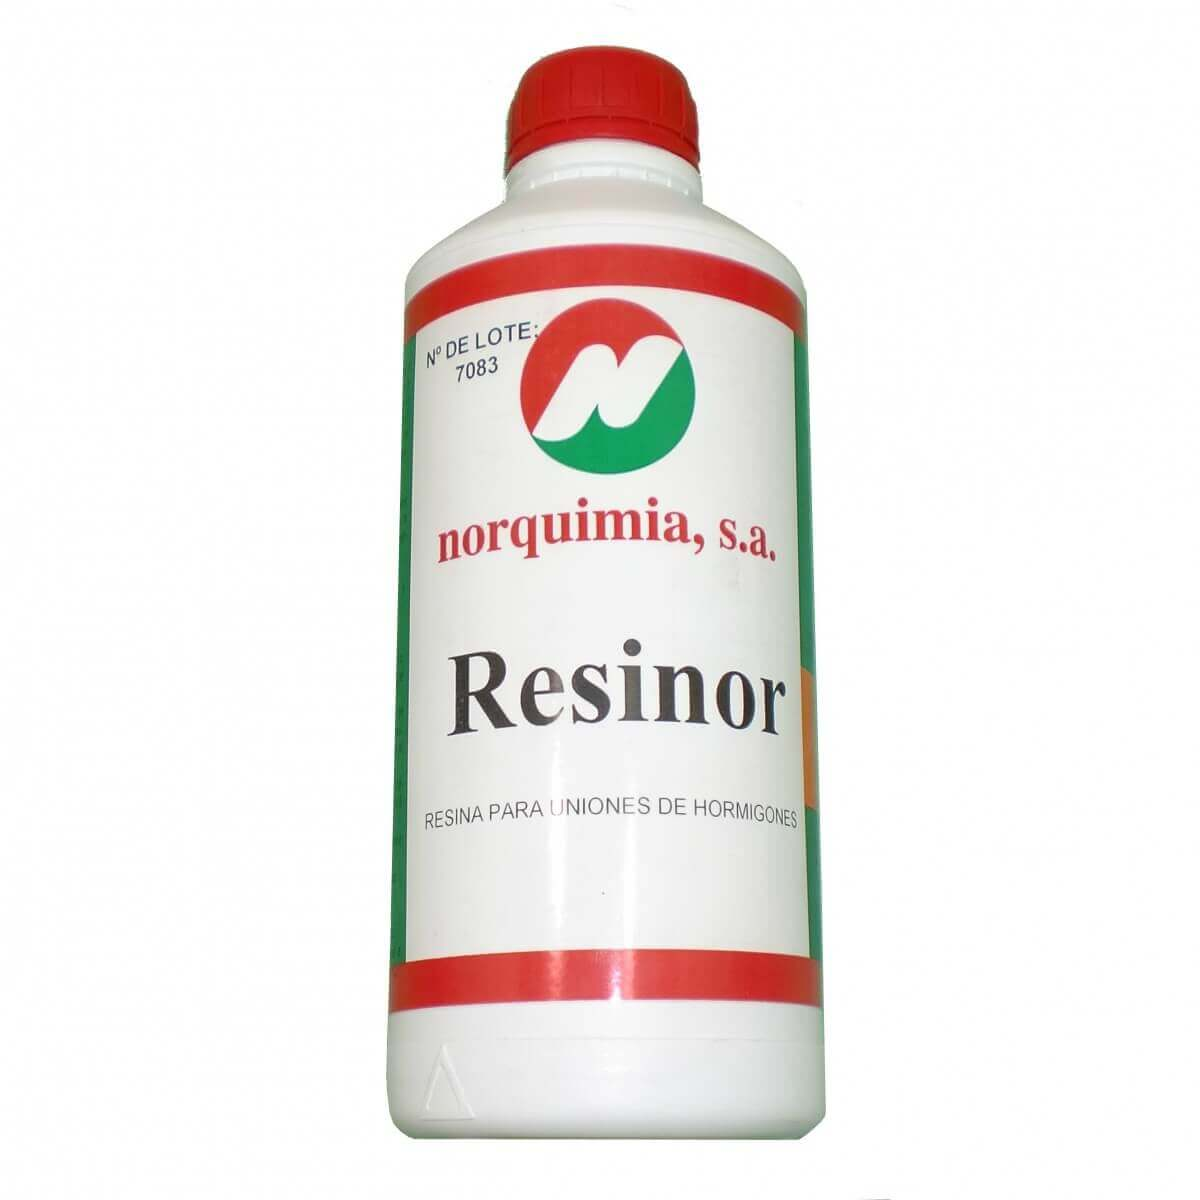 Resinor - N2 Chemical C50